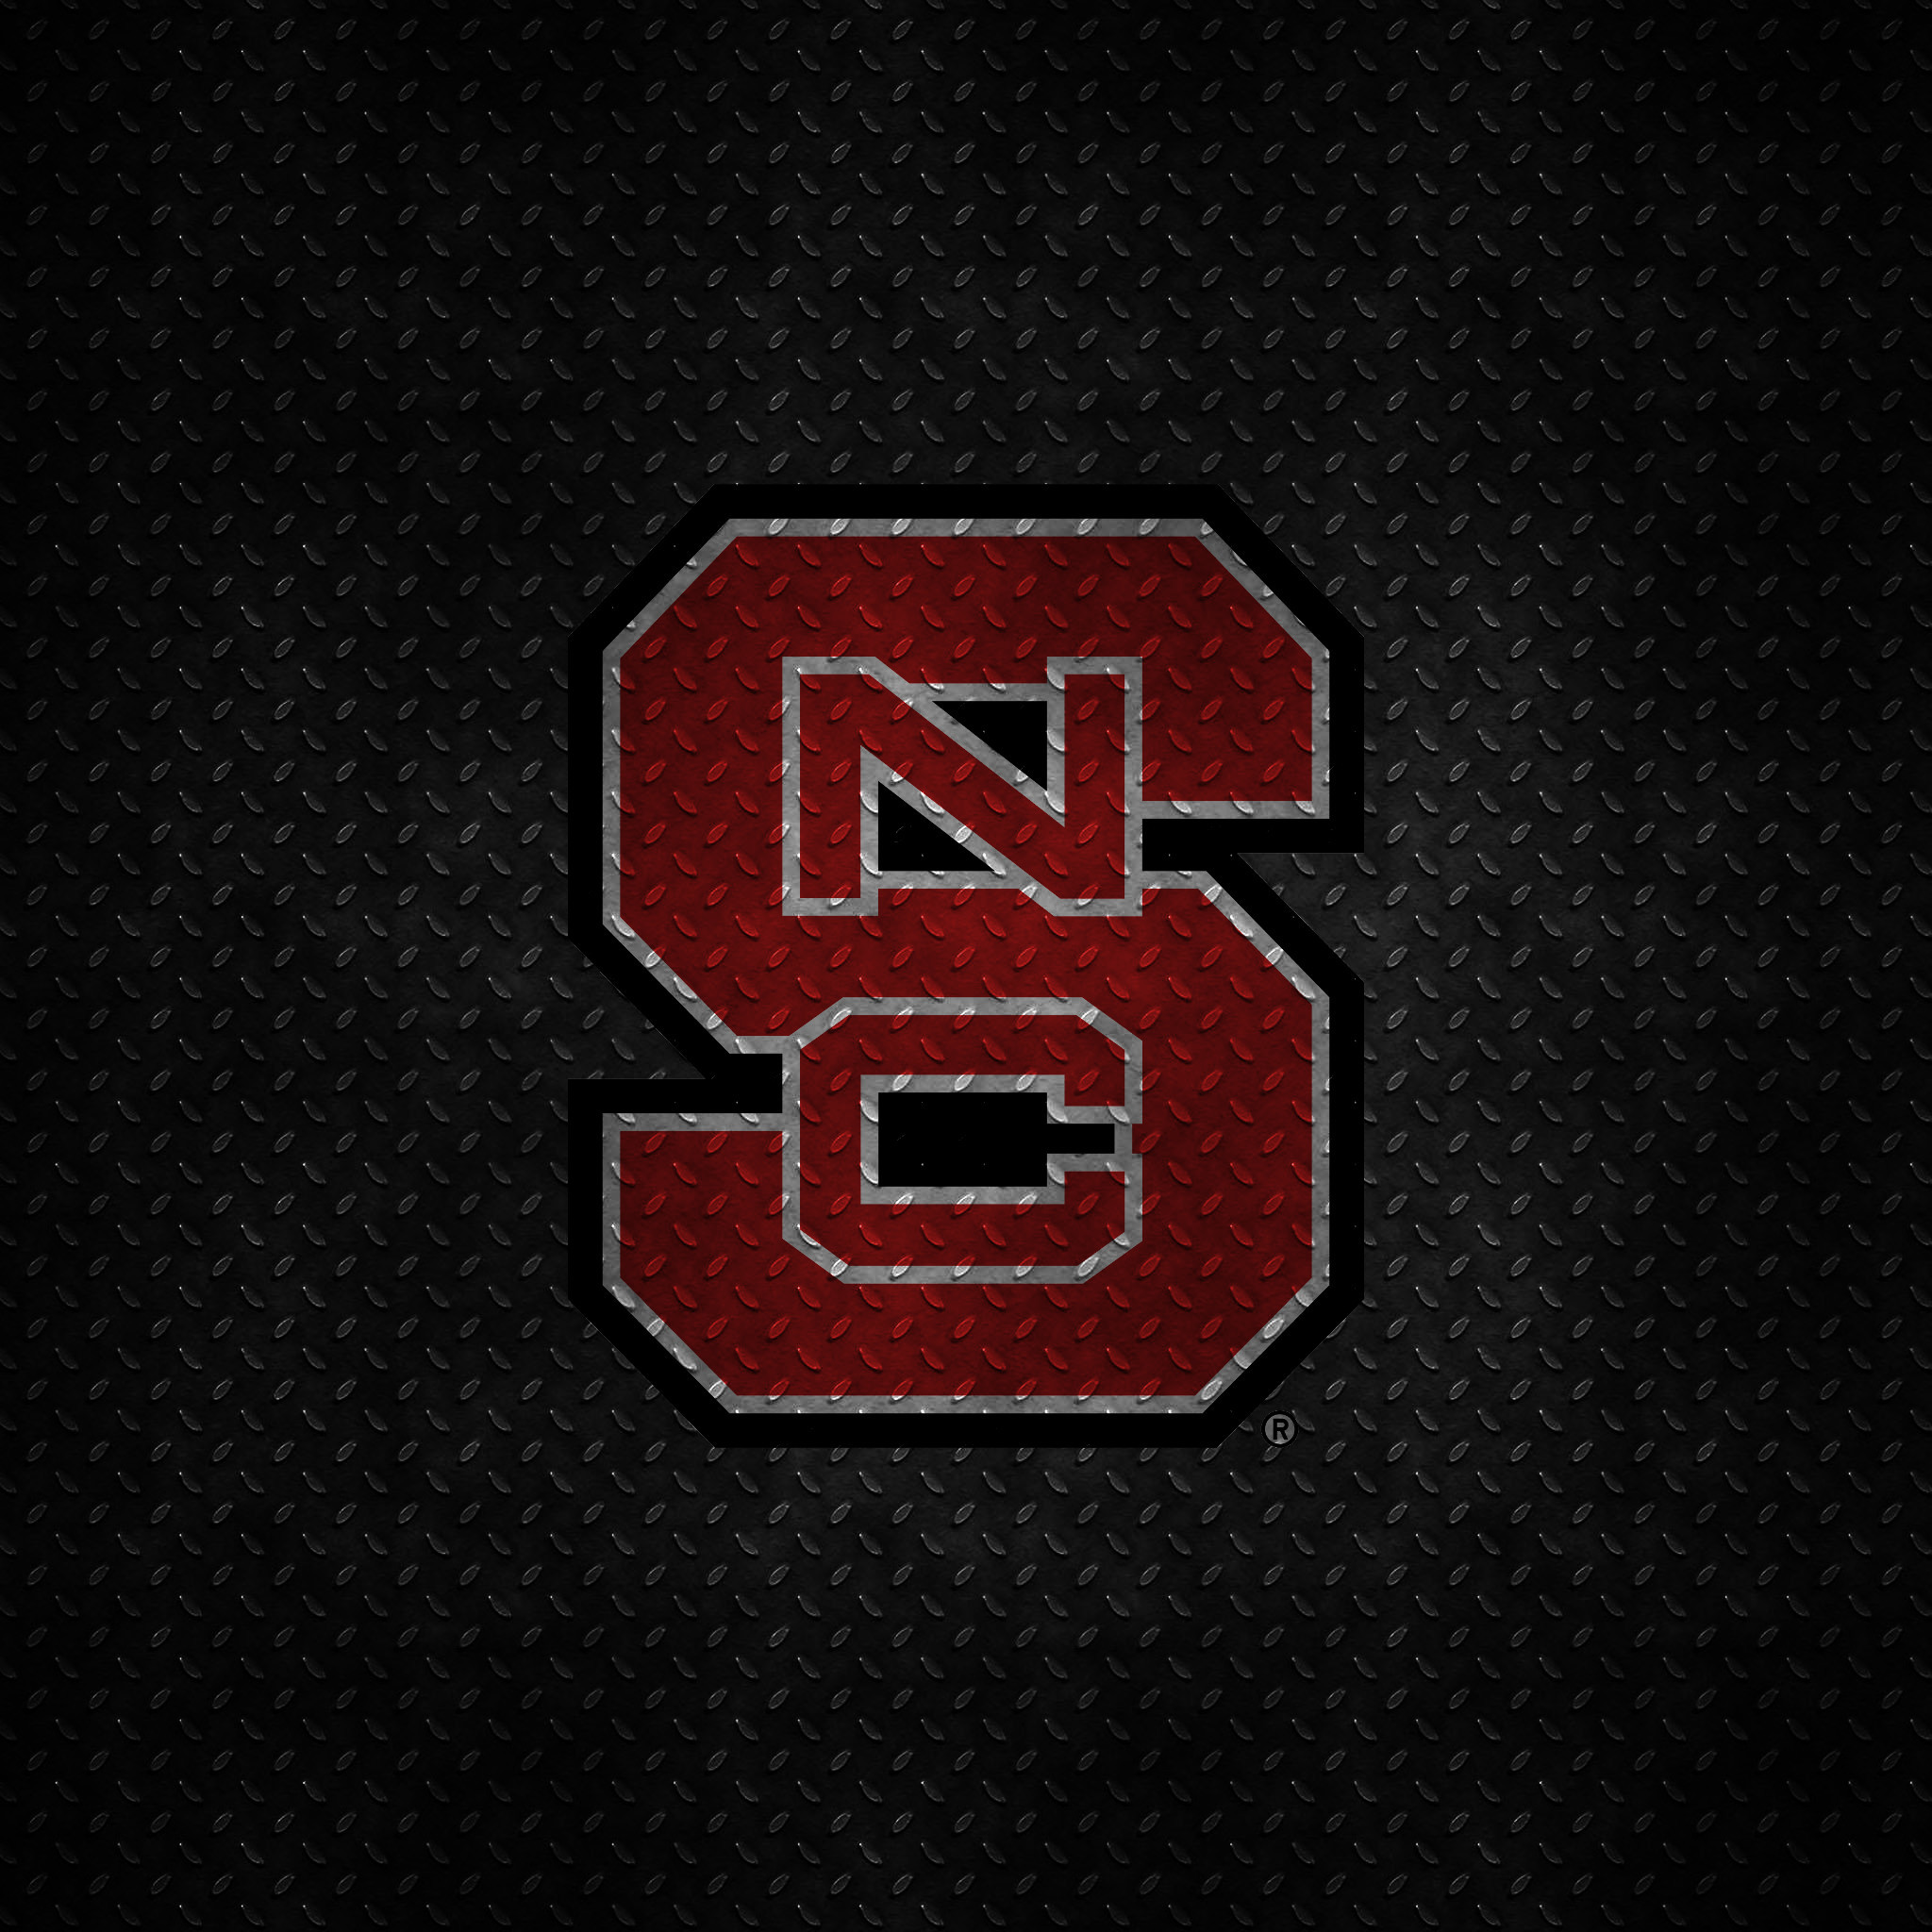 2048x2048 NC State Wolfpack football